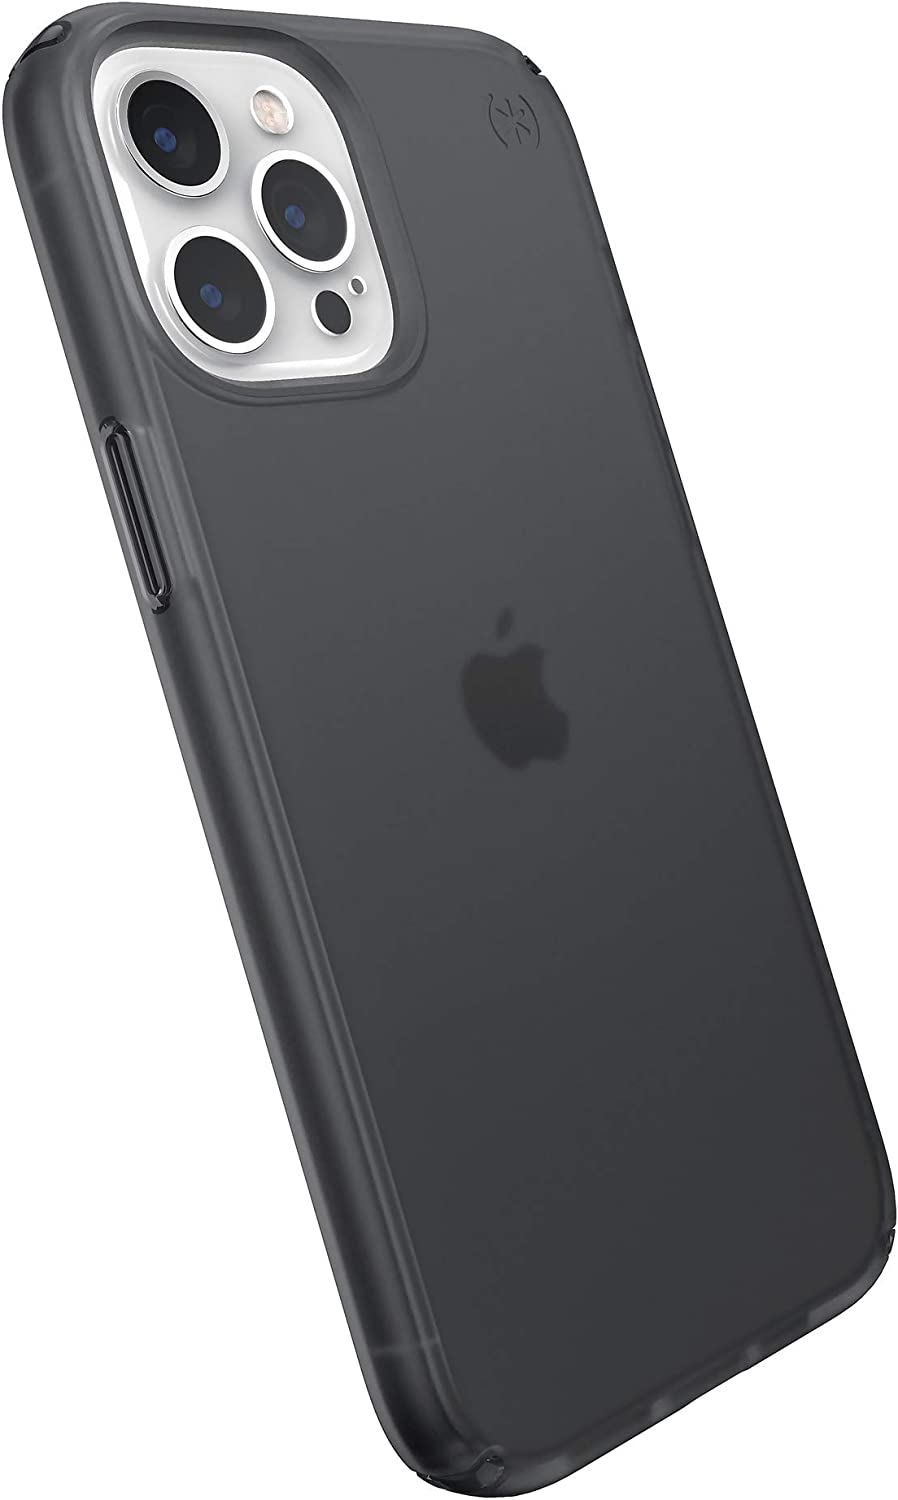 Speck Products Presidio Perfect-Mist iPhone 12 Pro Max Case, Obsidian/Obsidian